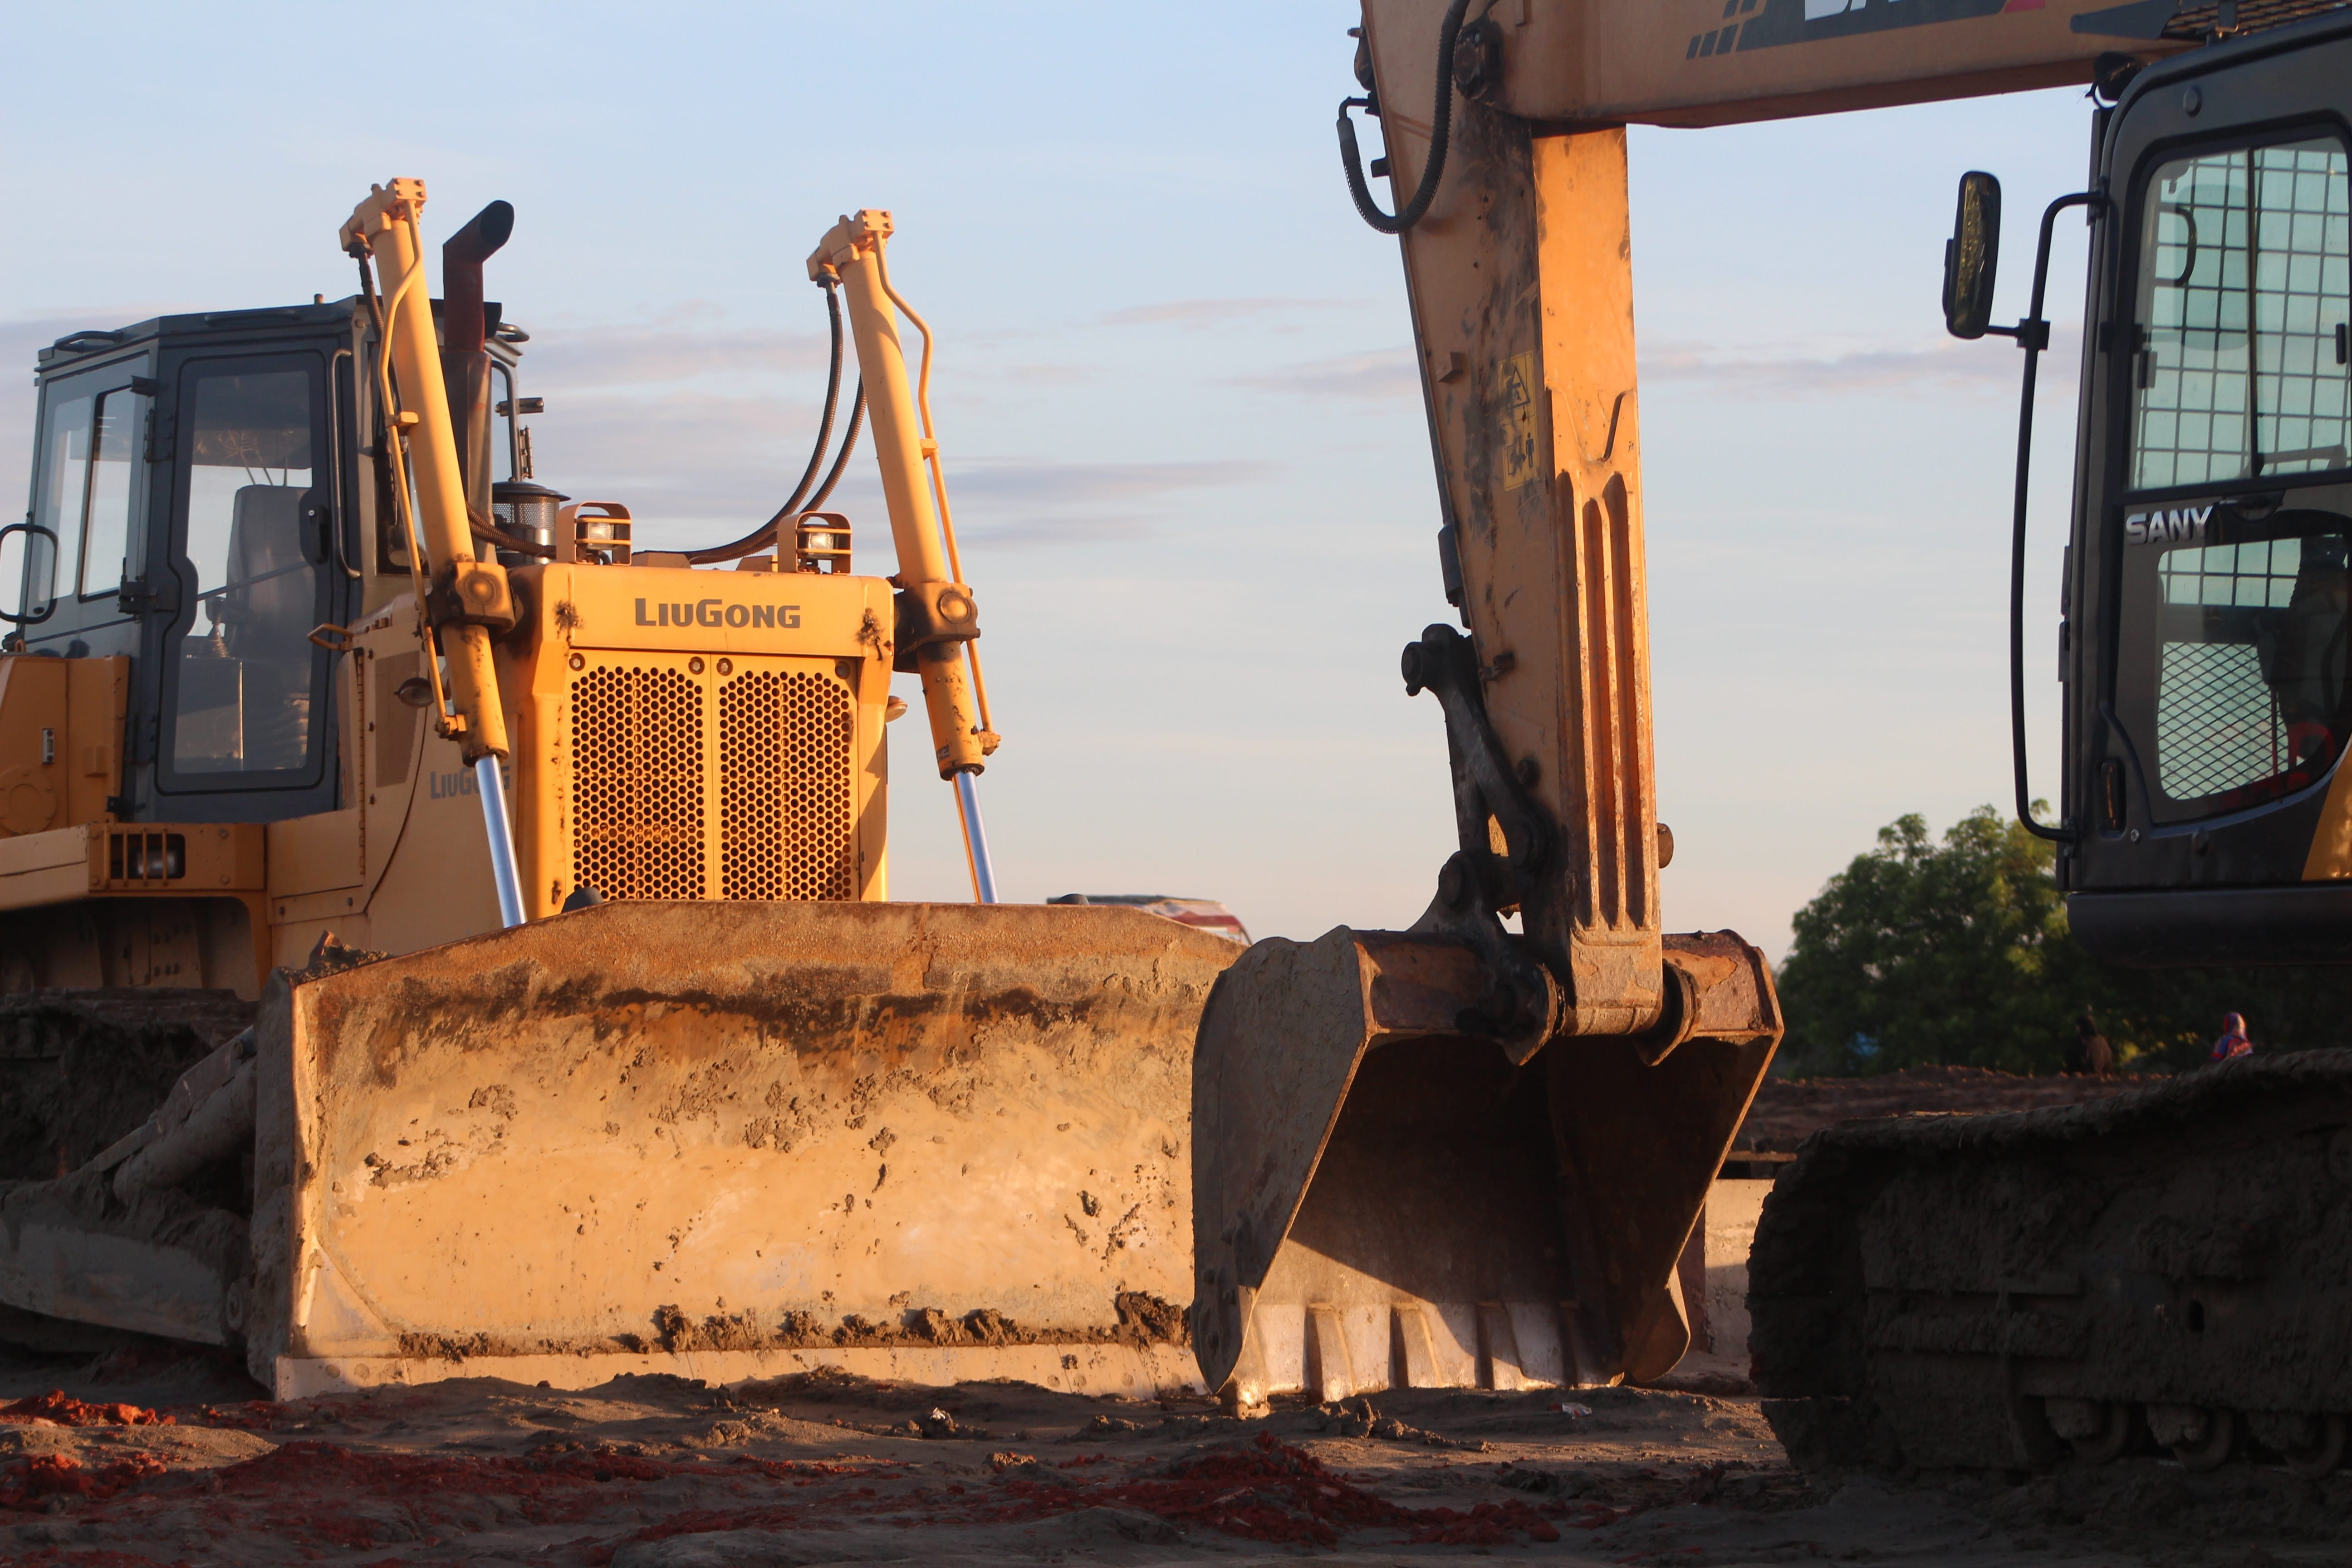 Bulldozer Crimes More Common Than One May Think